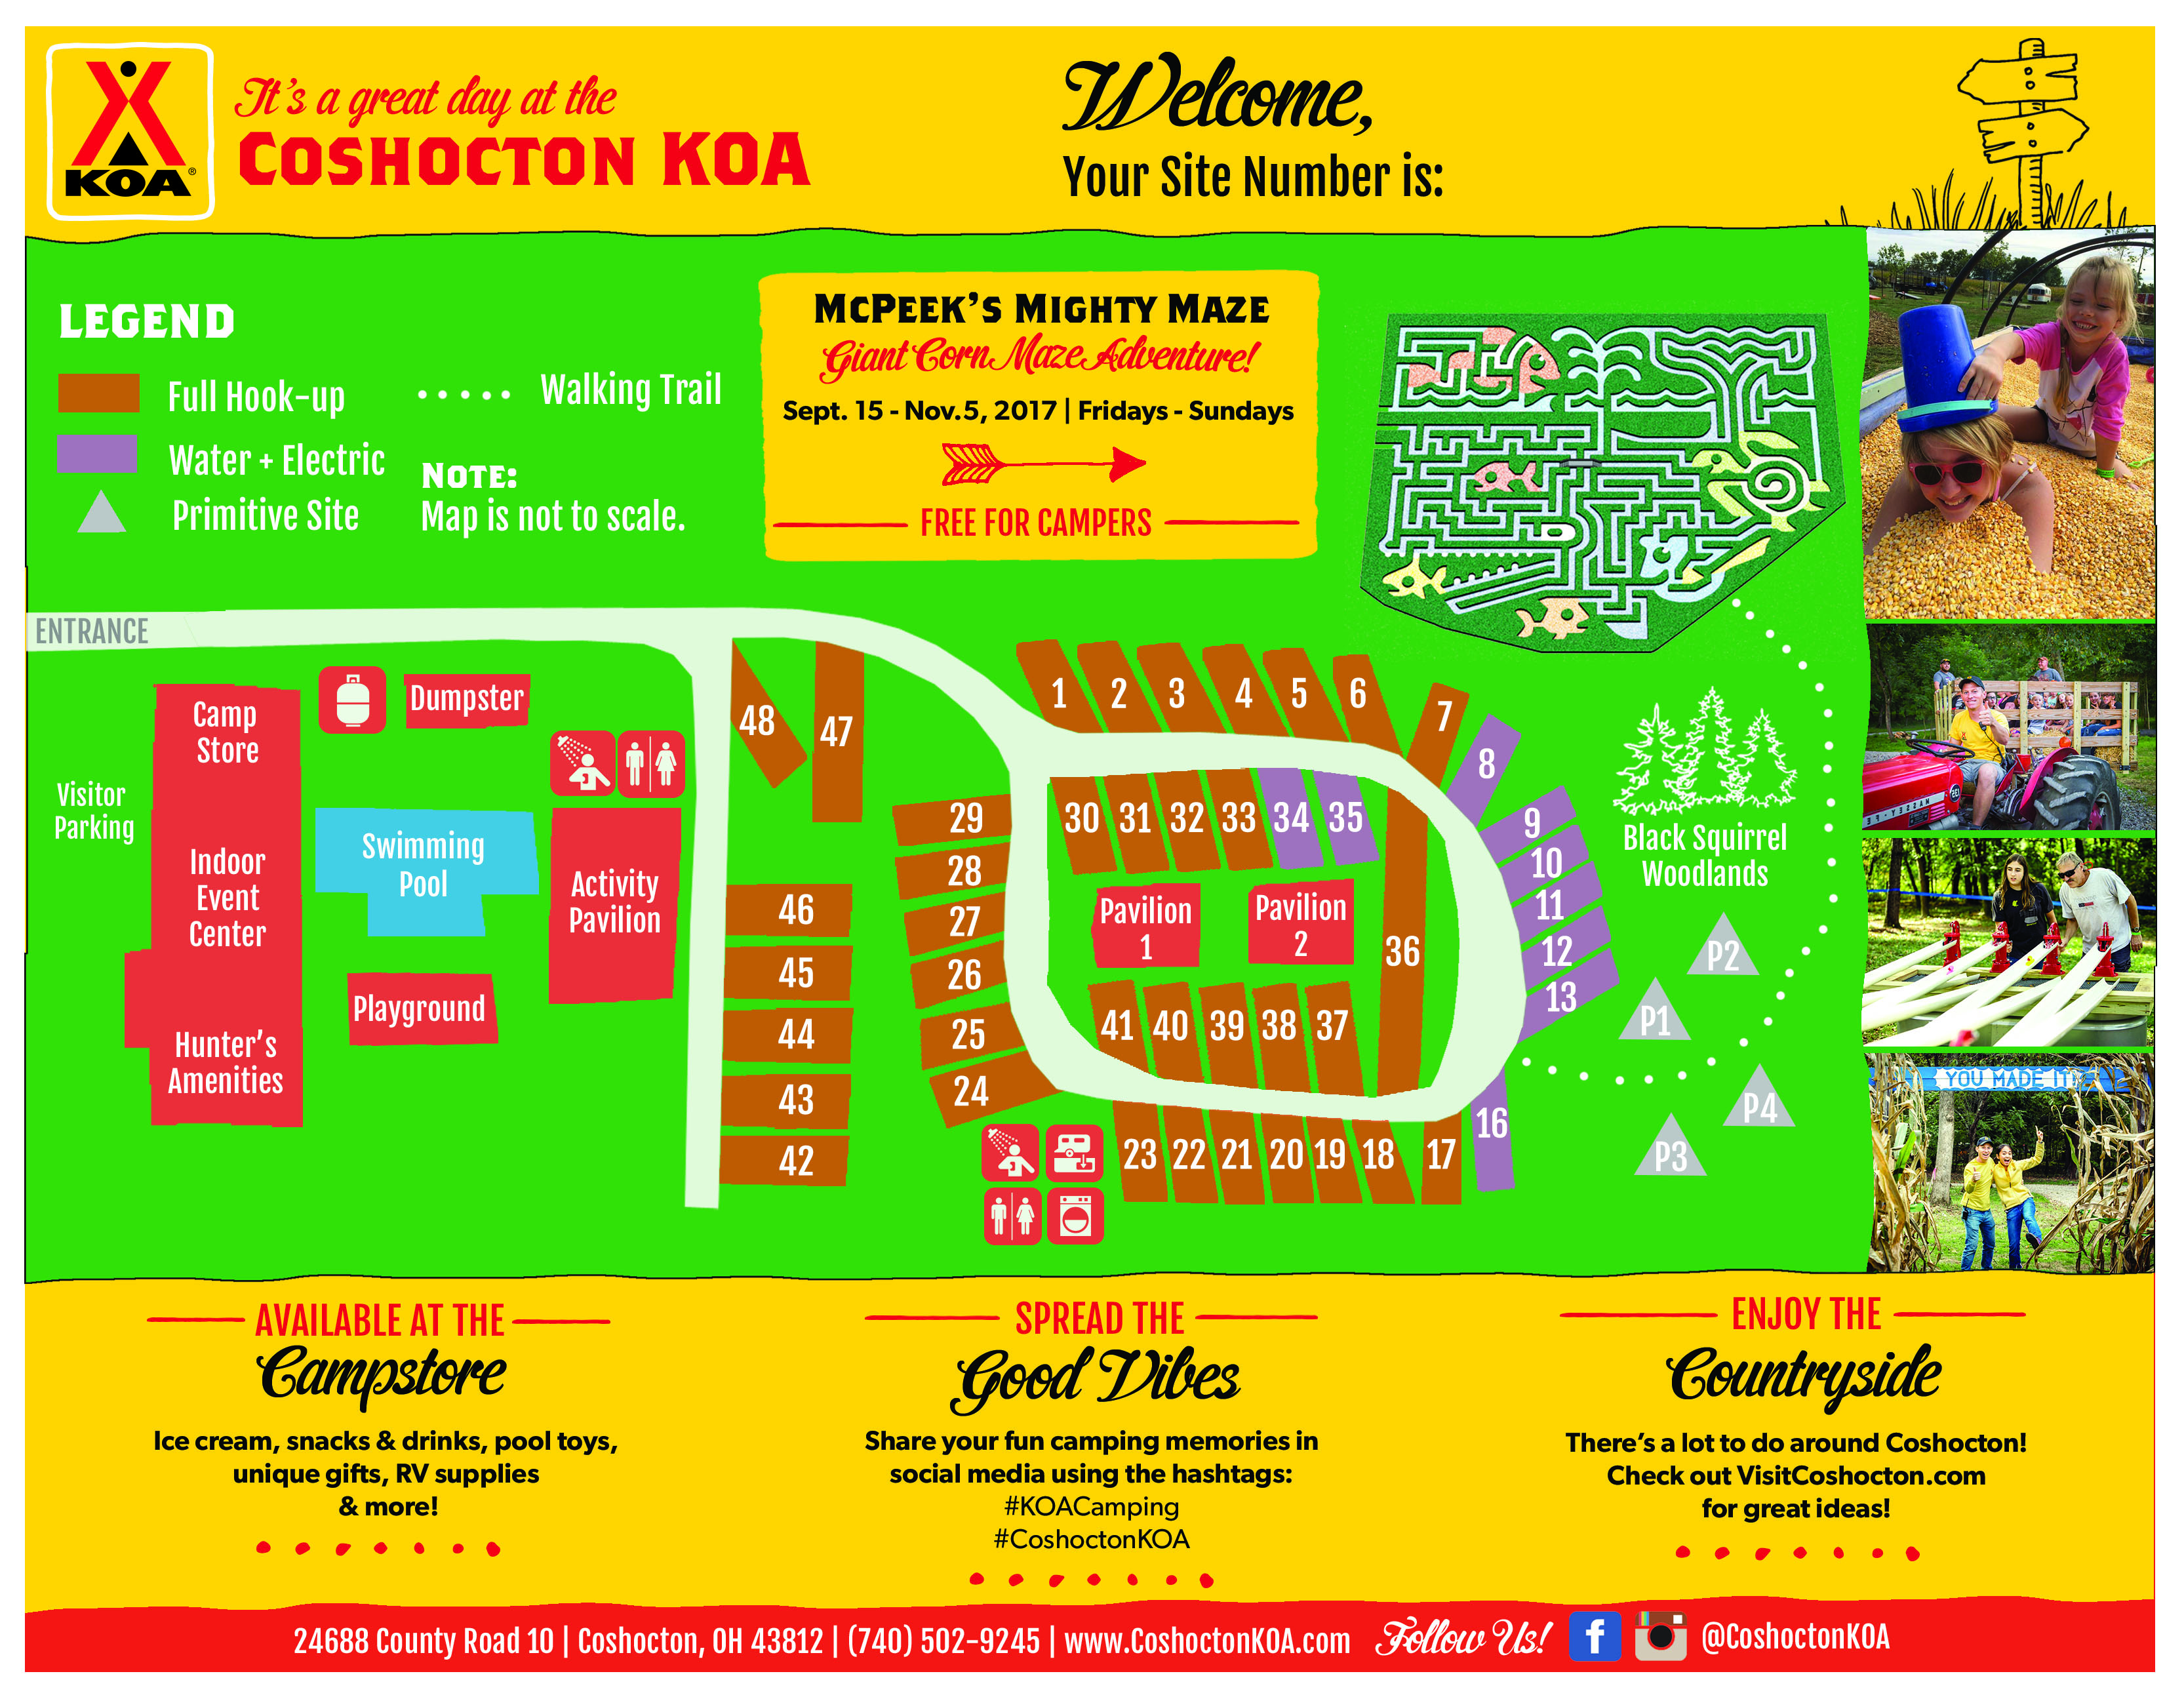 Campground Site Map